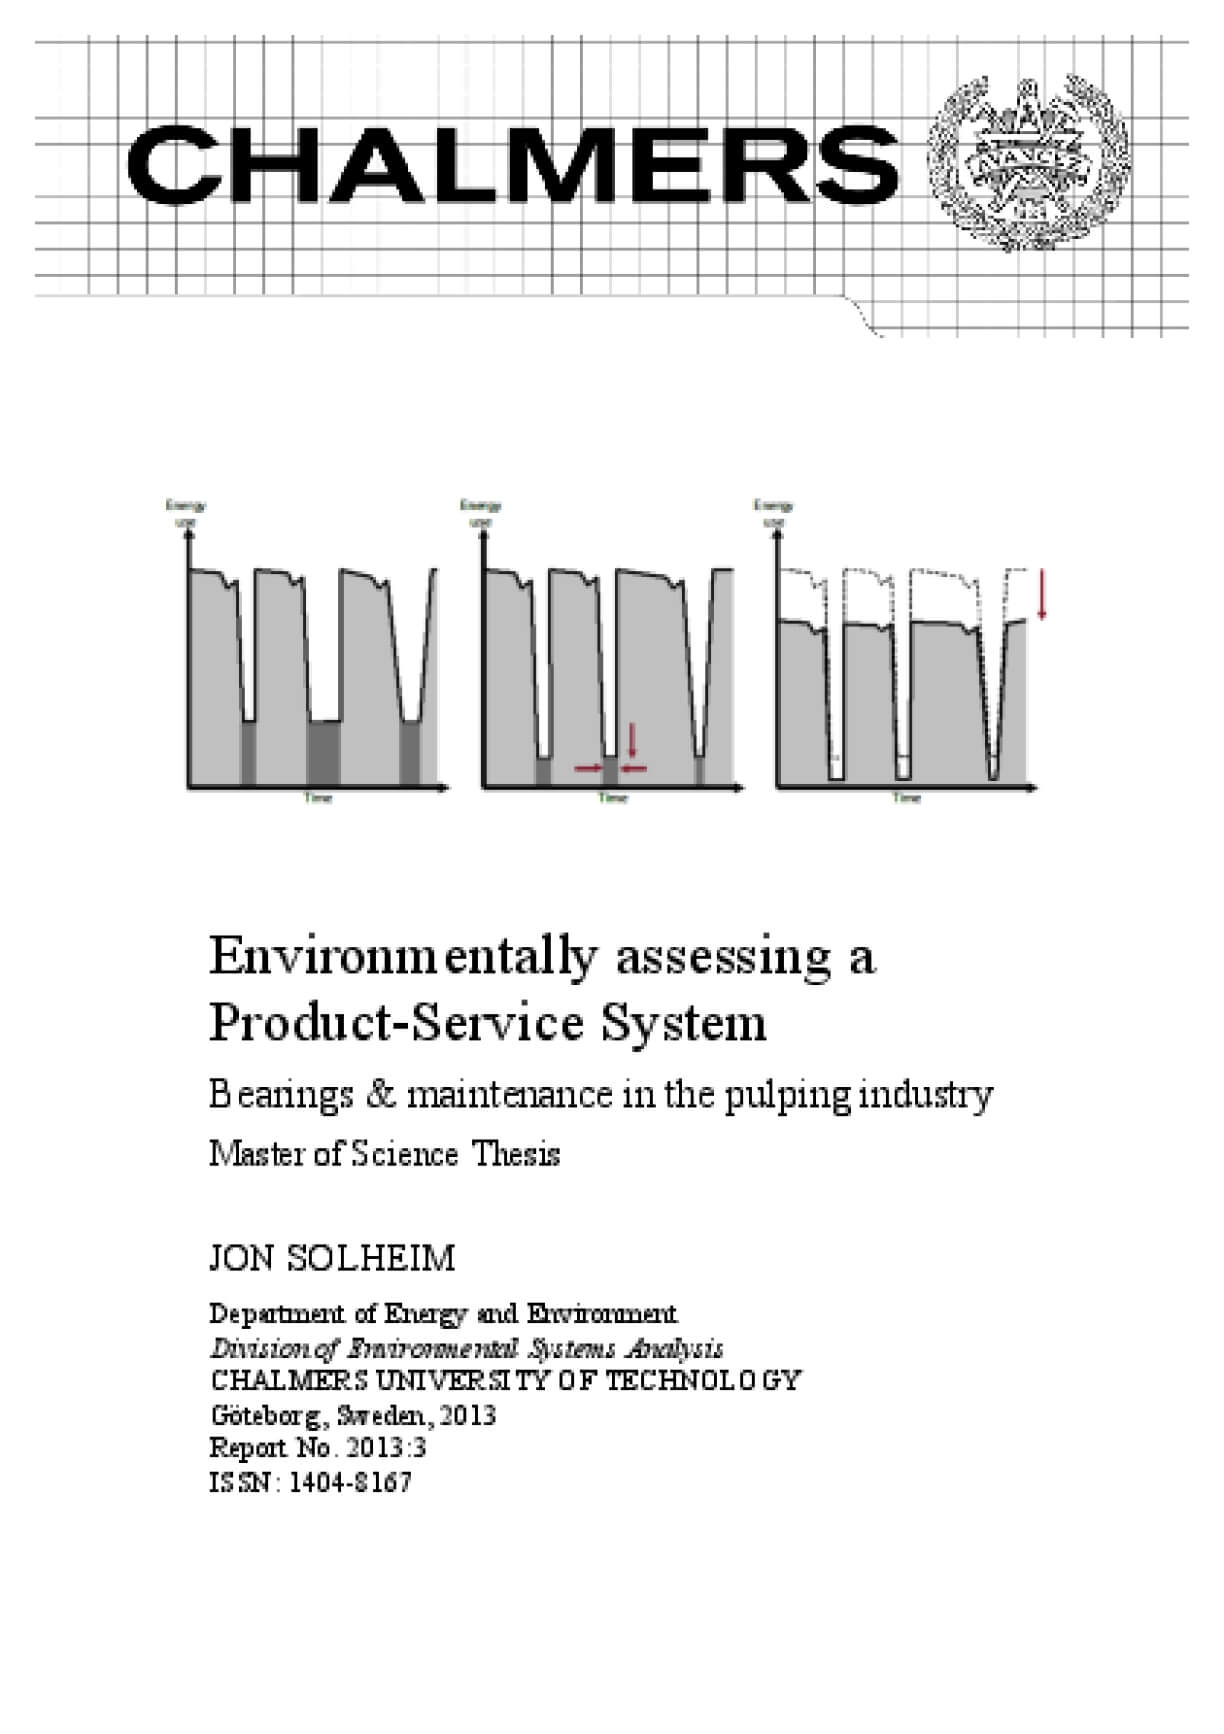 Environmentally Assessing a Product-Service System: Bearings & Maintenance in the Pulping Industry